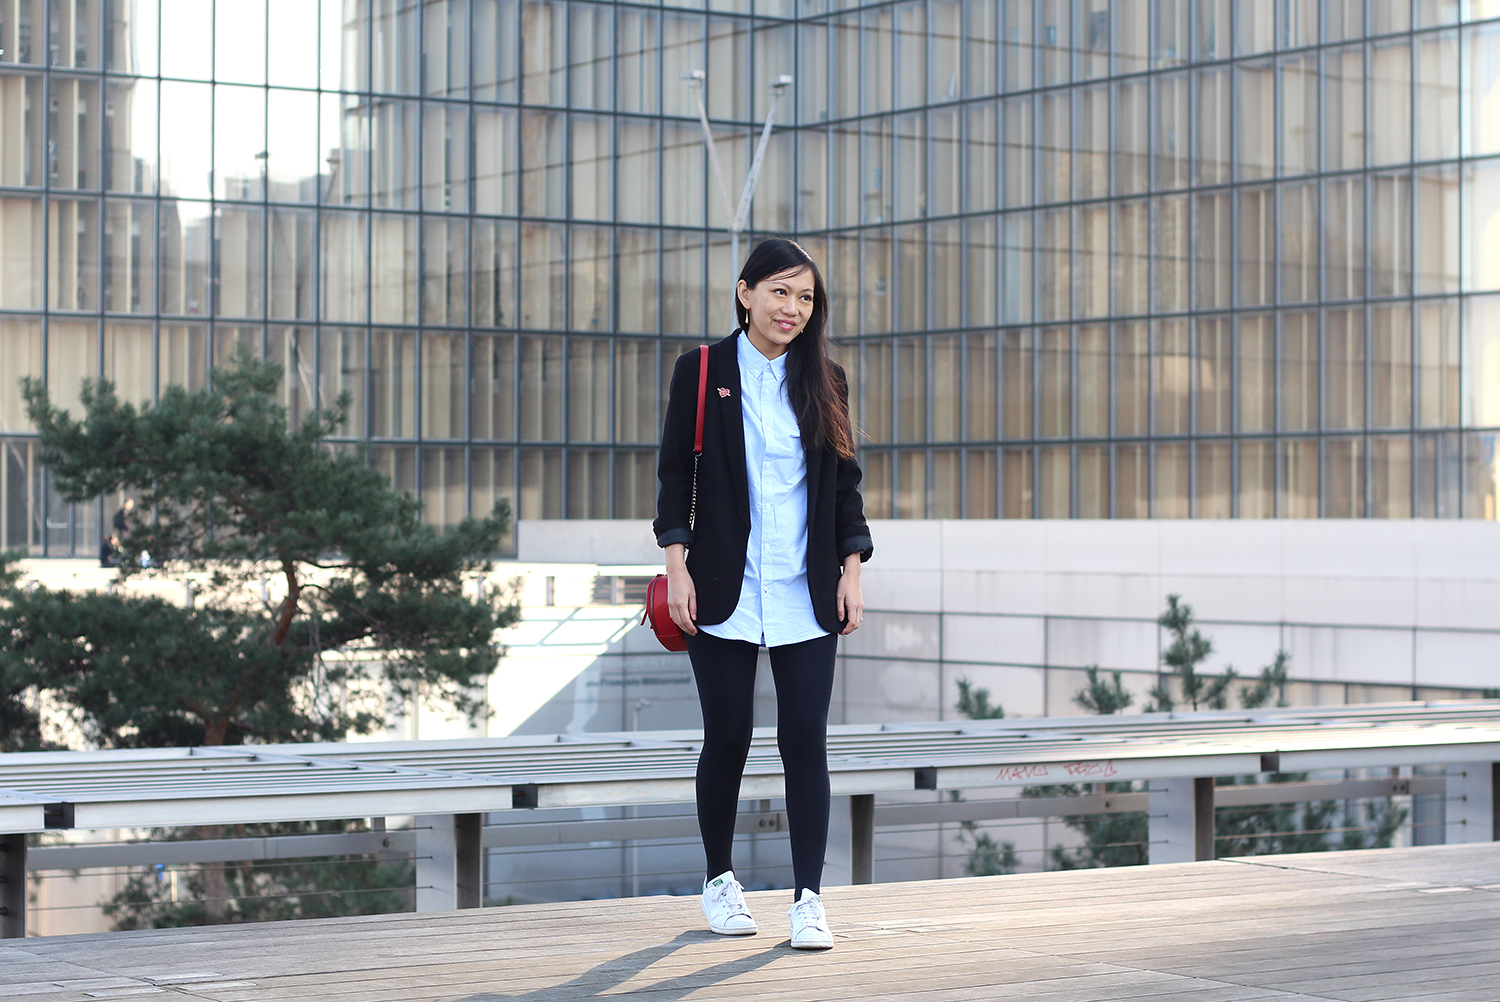 Petite and So What - Tenue trop de love - Sac Zara, Stan Smith, Blazer Top Shop Petite et Stan Smith